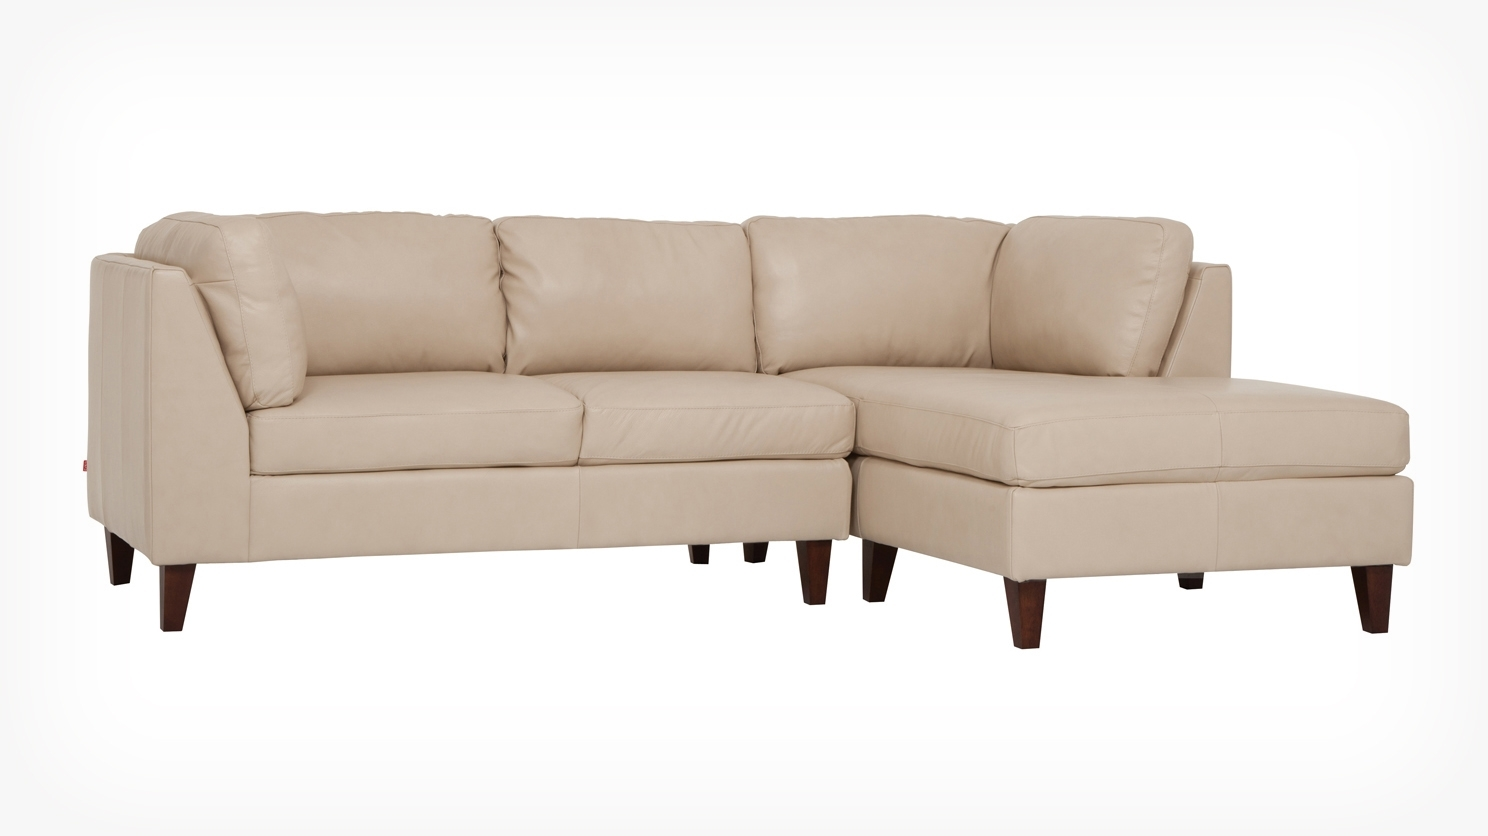 Salema 2 Piece Sectional Sofa With Chaise – Leather In Trendy Eq3 Sectional Sofas (View 11 of 15)